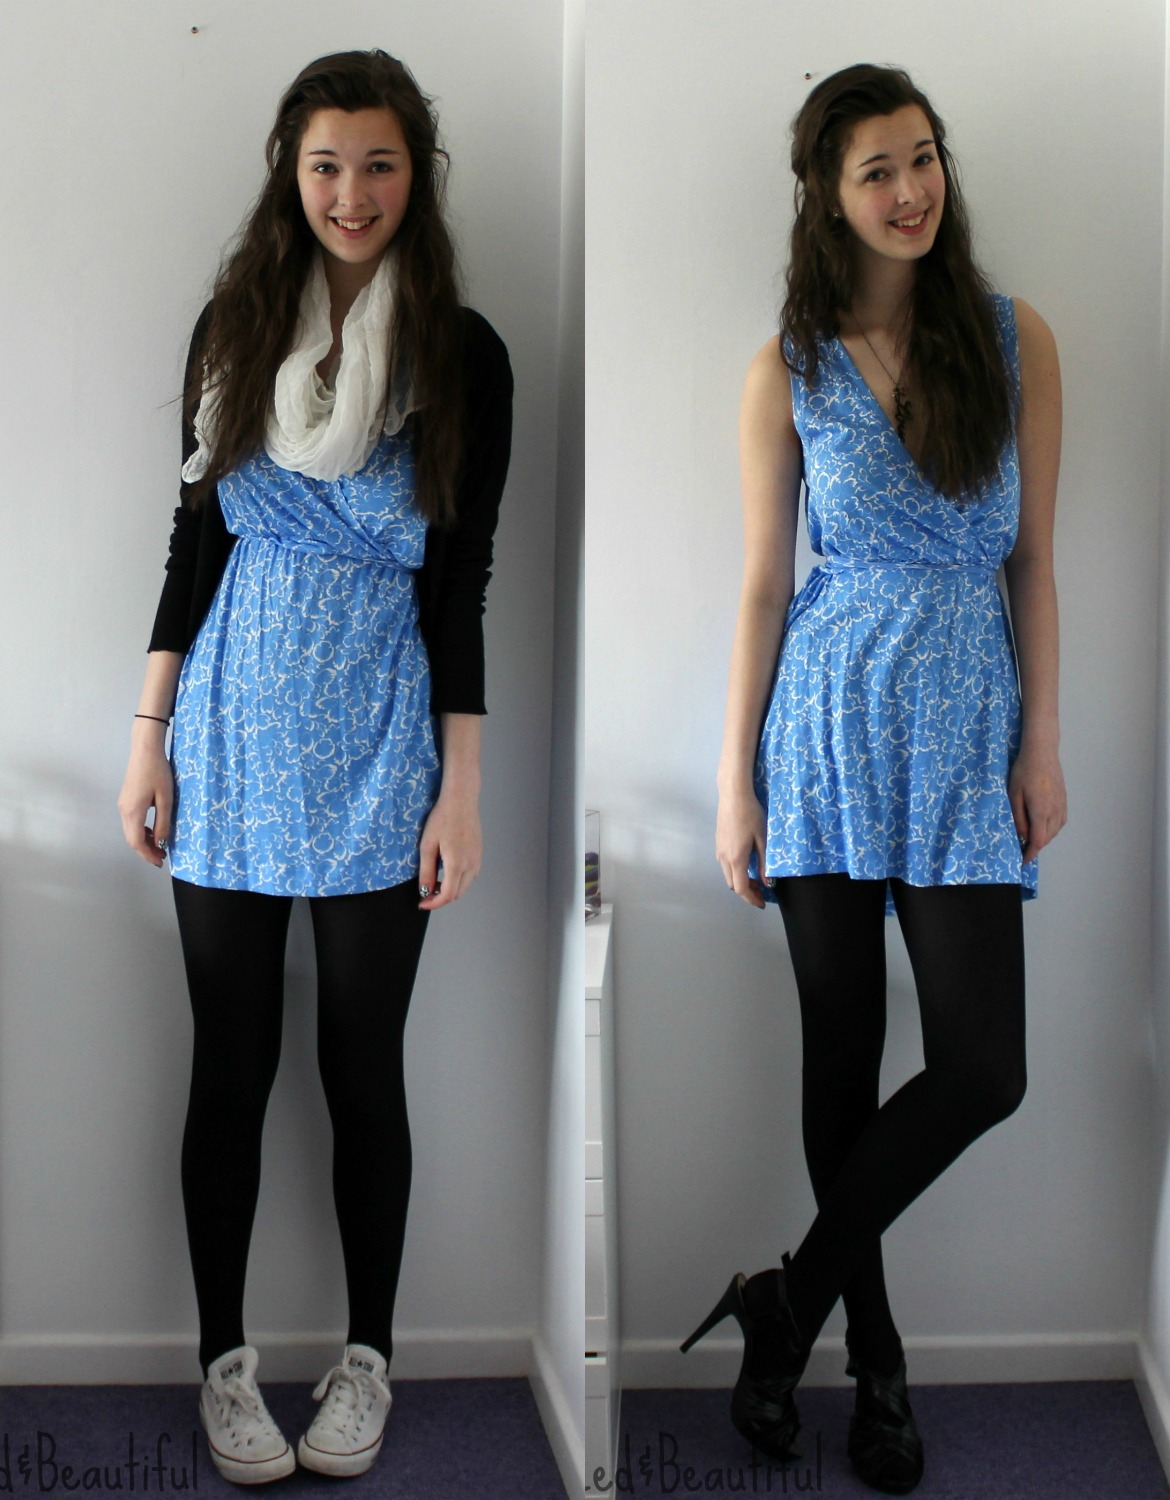 Formal Dress With Tights This blue printed dress is